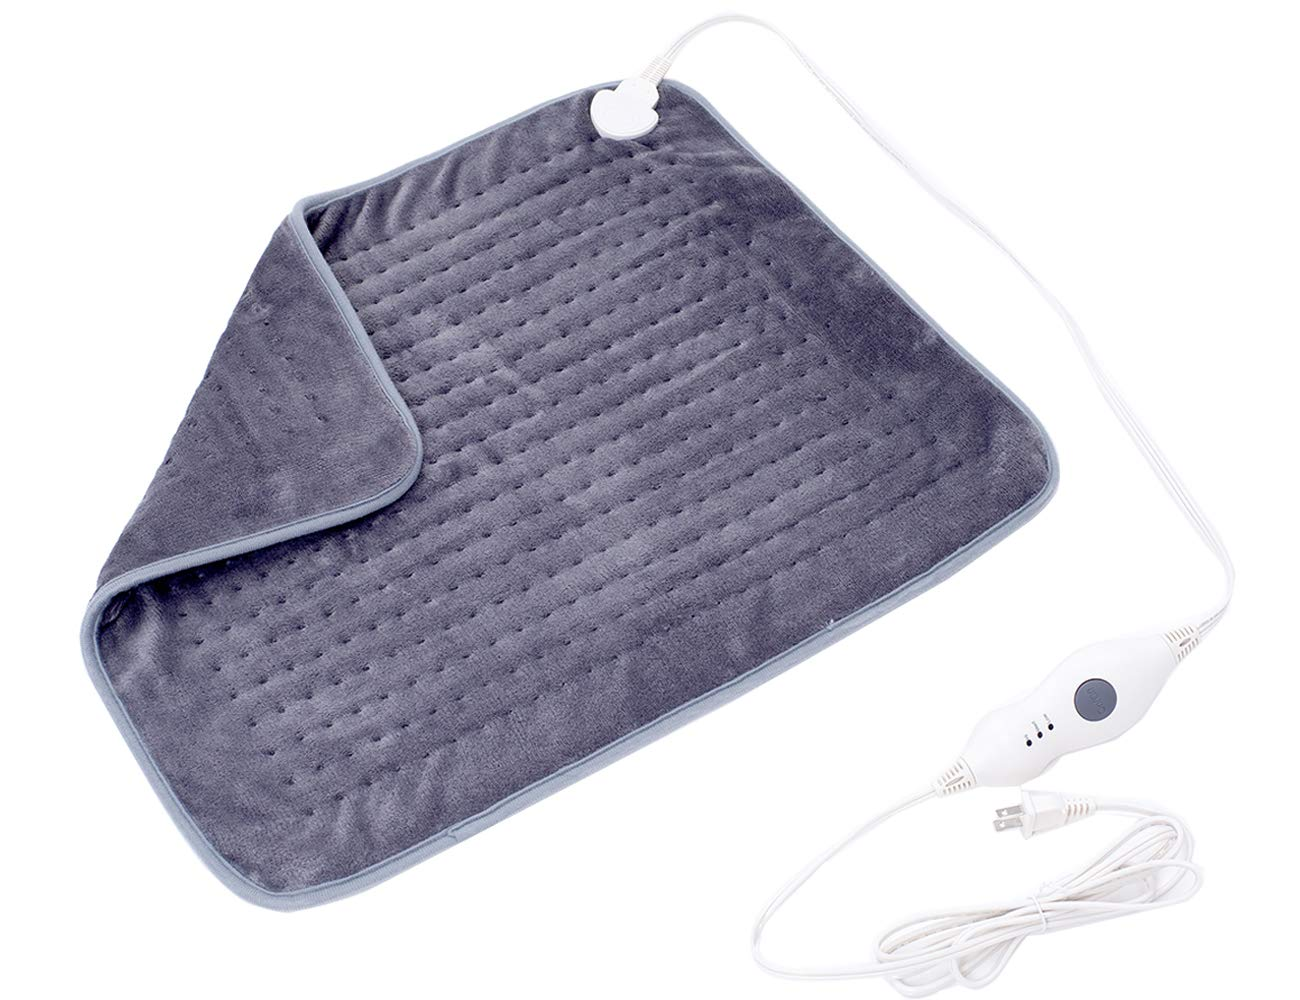 Heating Pads for Back Pain 20''x24'' Extra Large Heat Pad with Auto Shut Off 3 Temperature Setting XXL Electric Heating Pad Gray by Mosabo by Mosabo